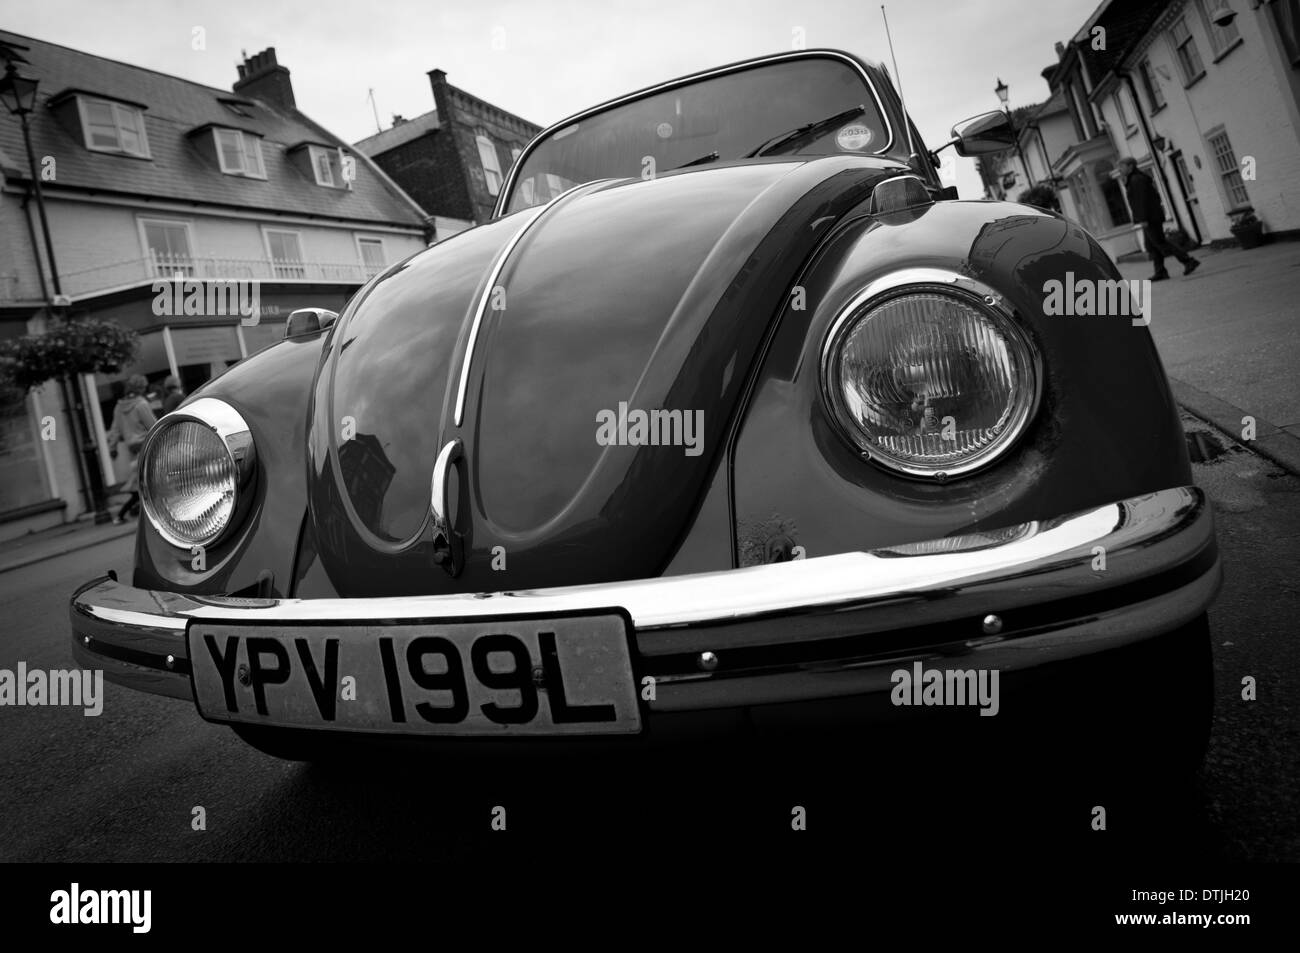 A close up of a VW Beetle - Stock Image